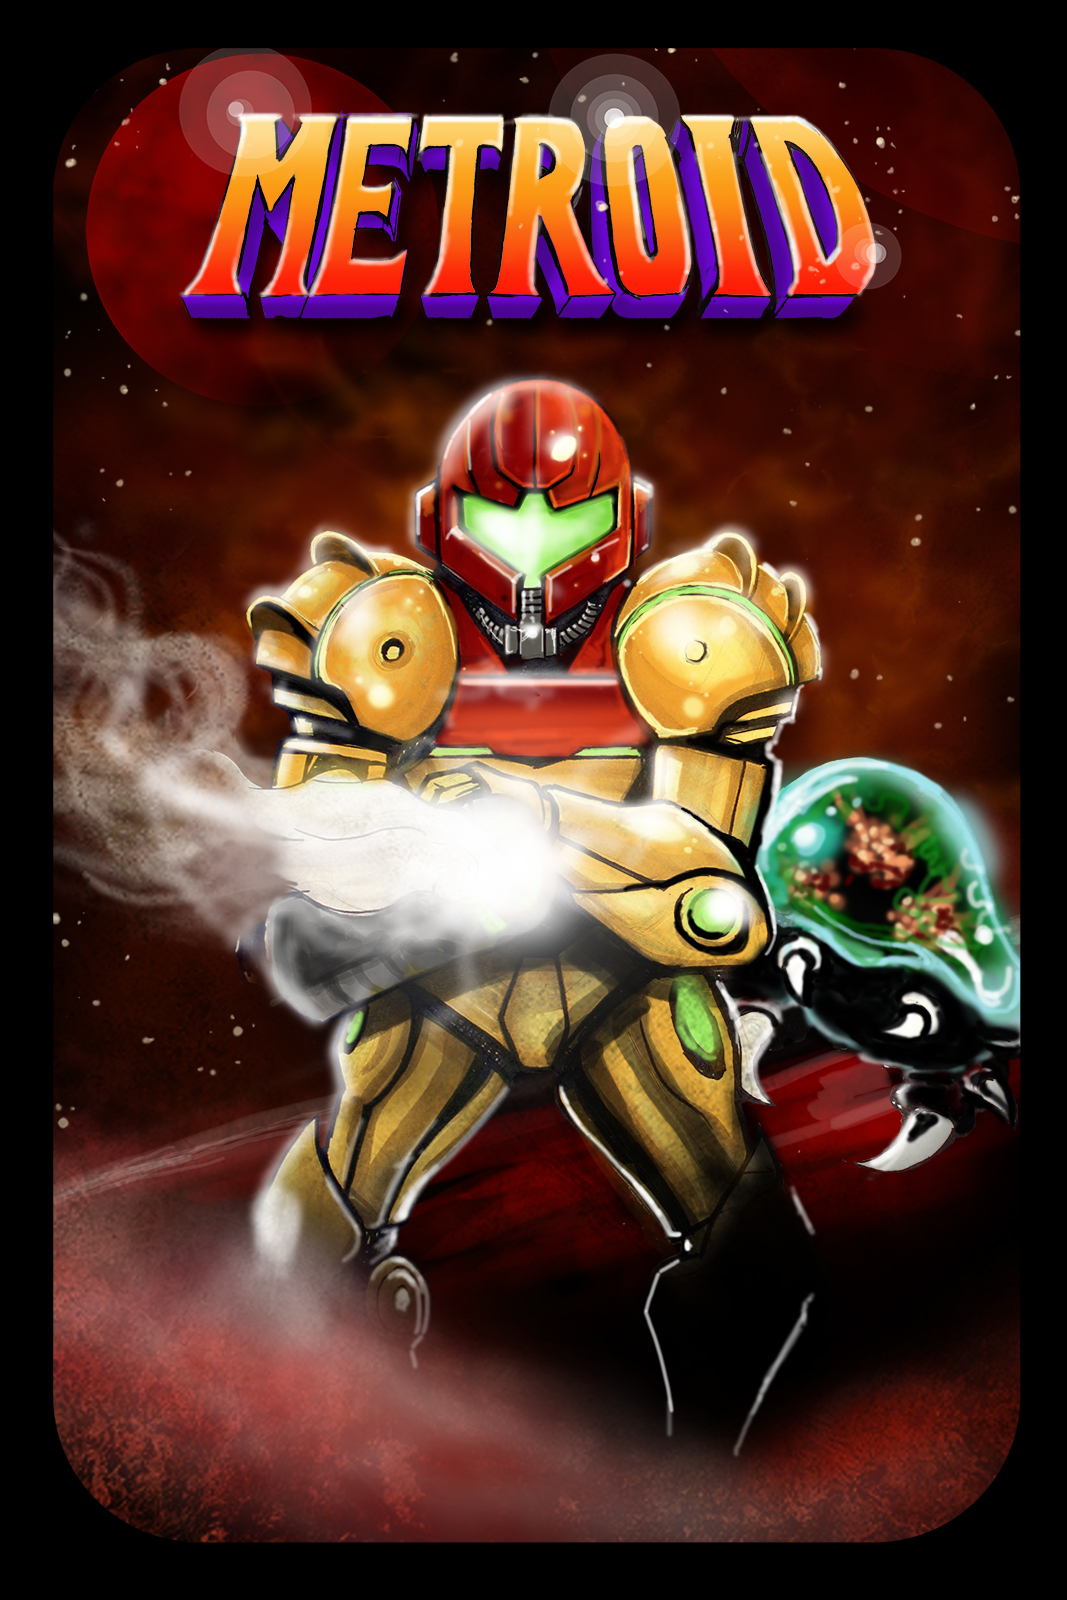 METROID_POSTER_LOWRES